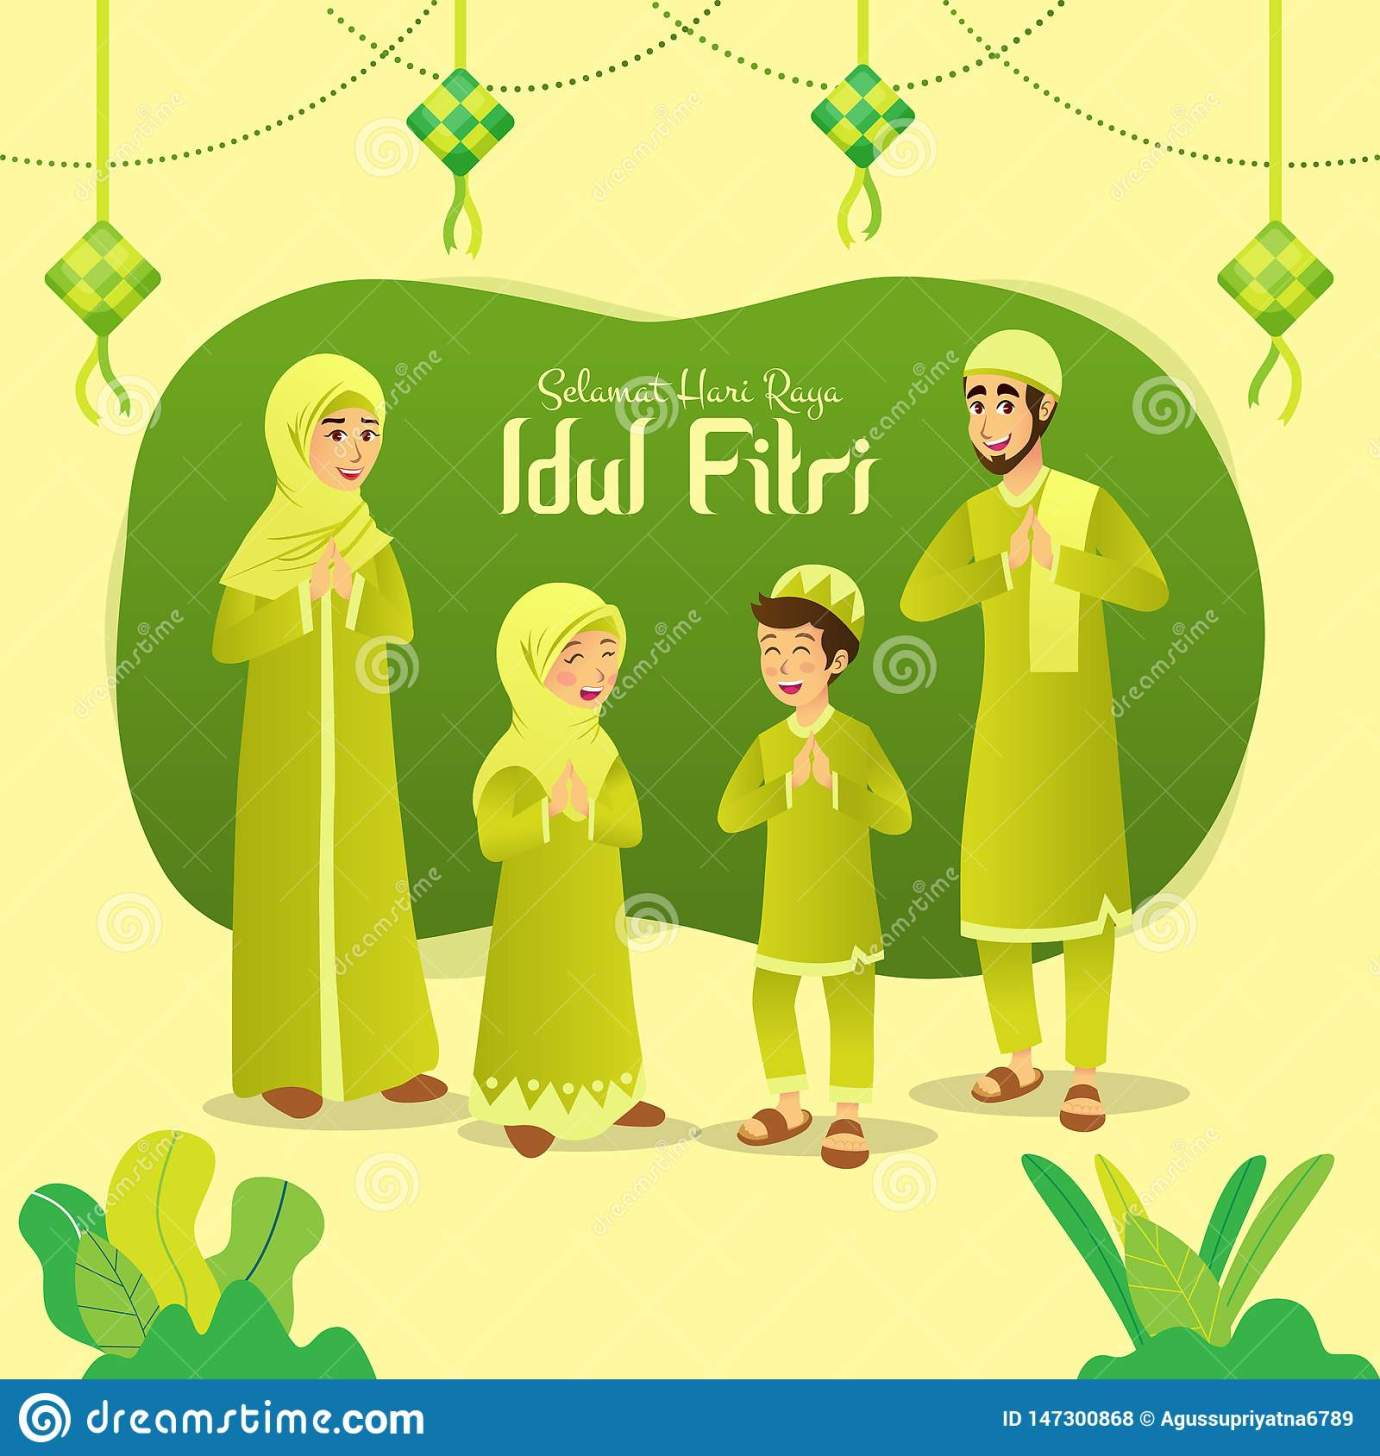 Selamat Hari Raya Idul Fitri Is Another Language Of Happy Eid